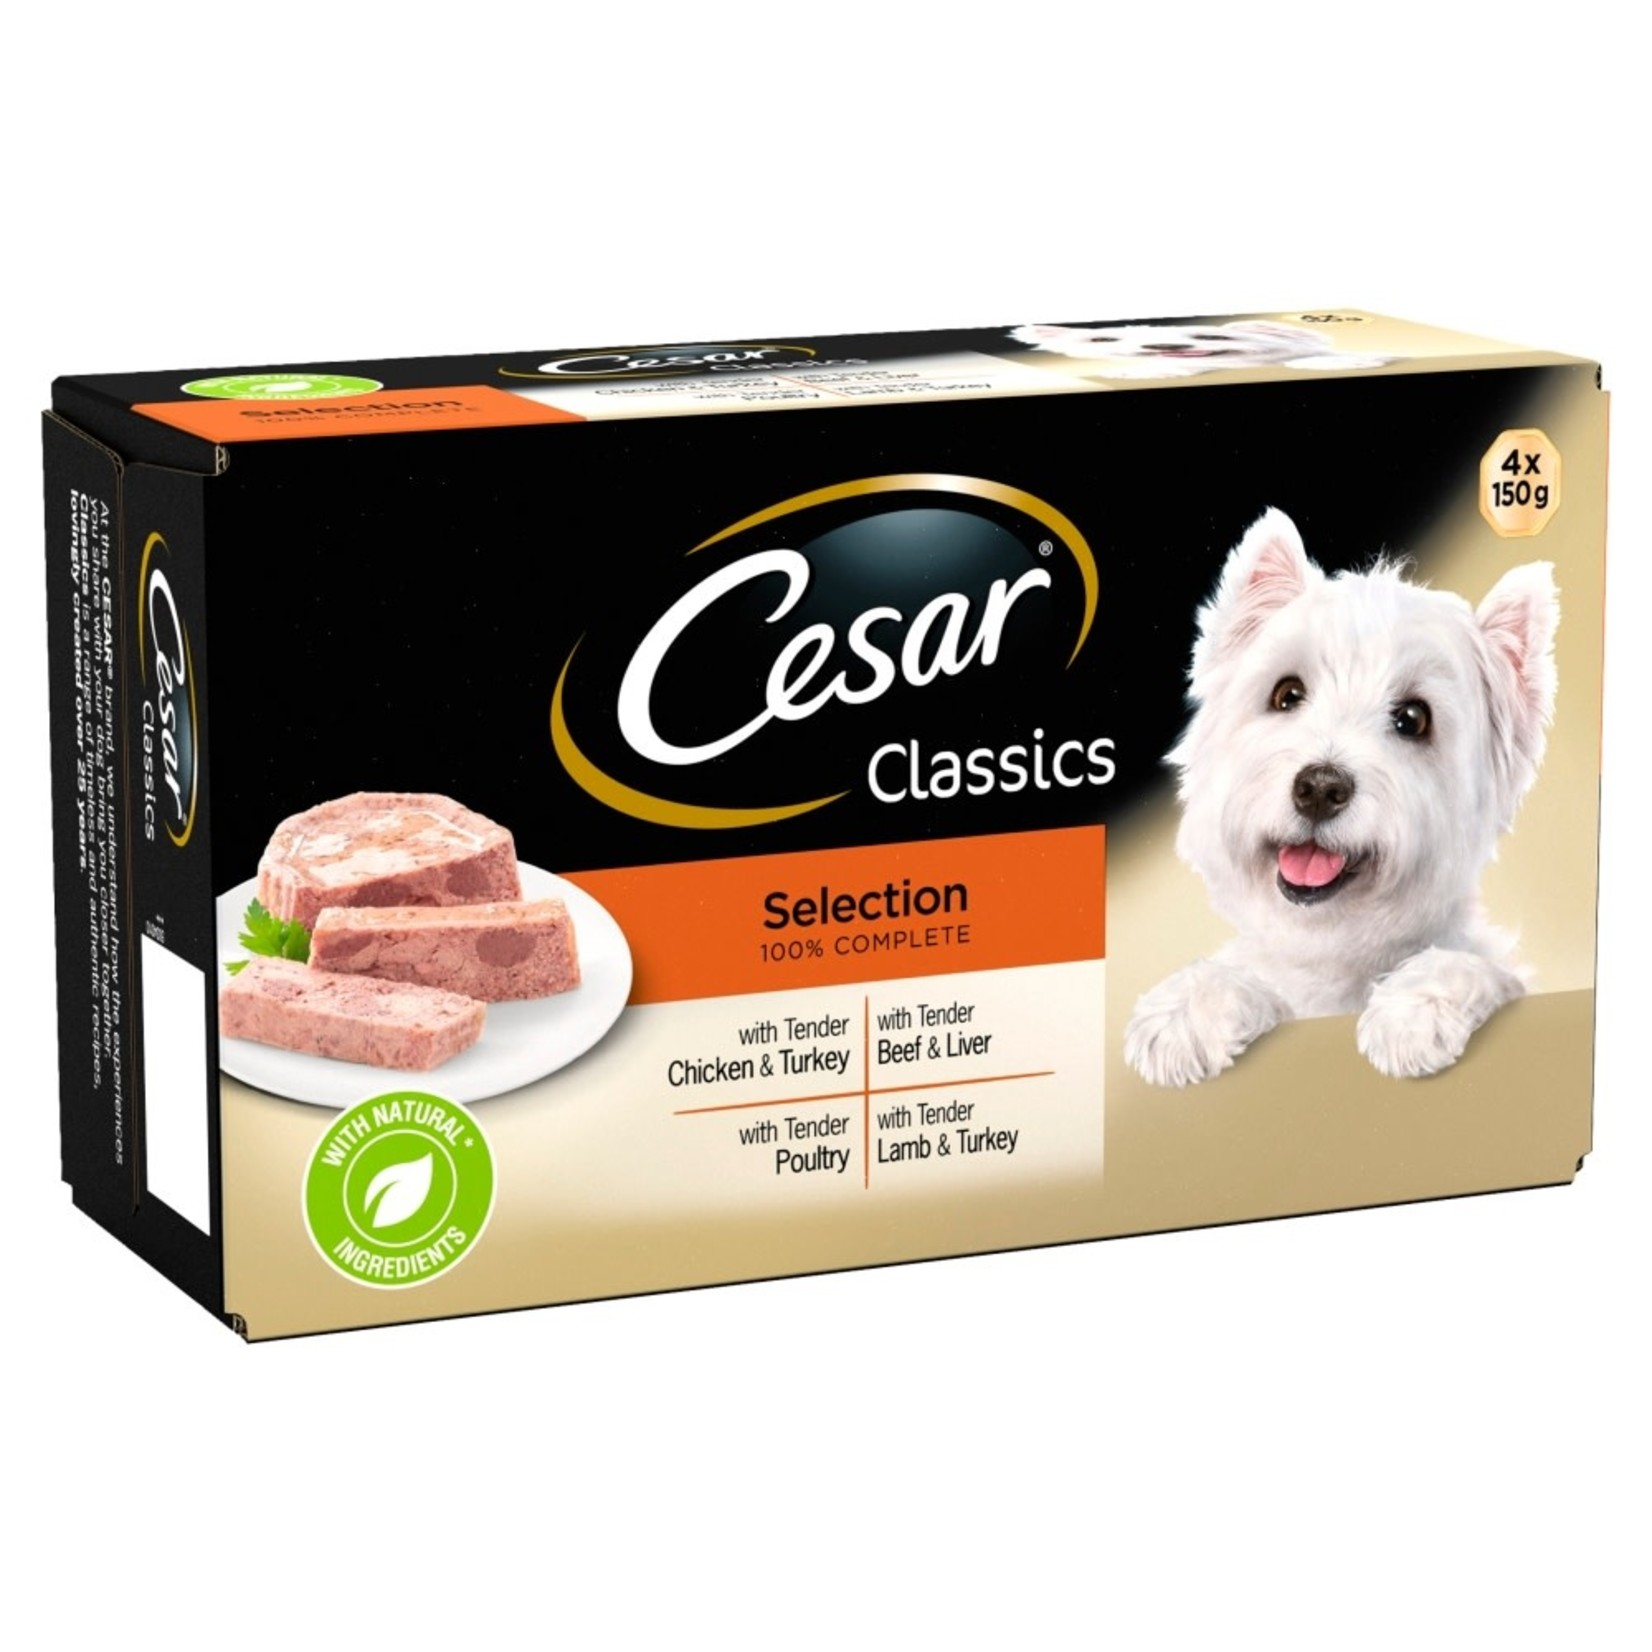 Cesar Adult Dog Wet Food Tray Classic Selection, 4 x 150g